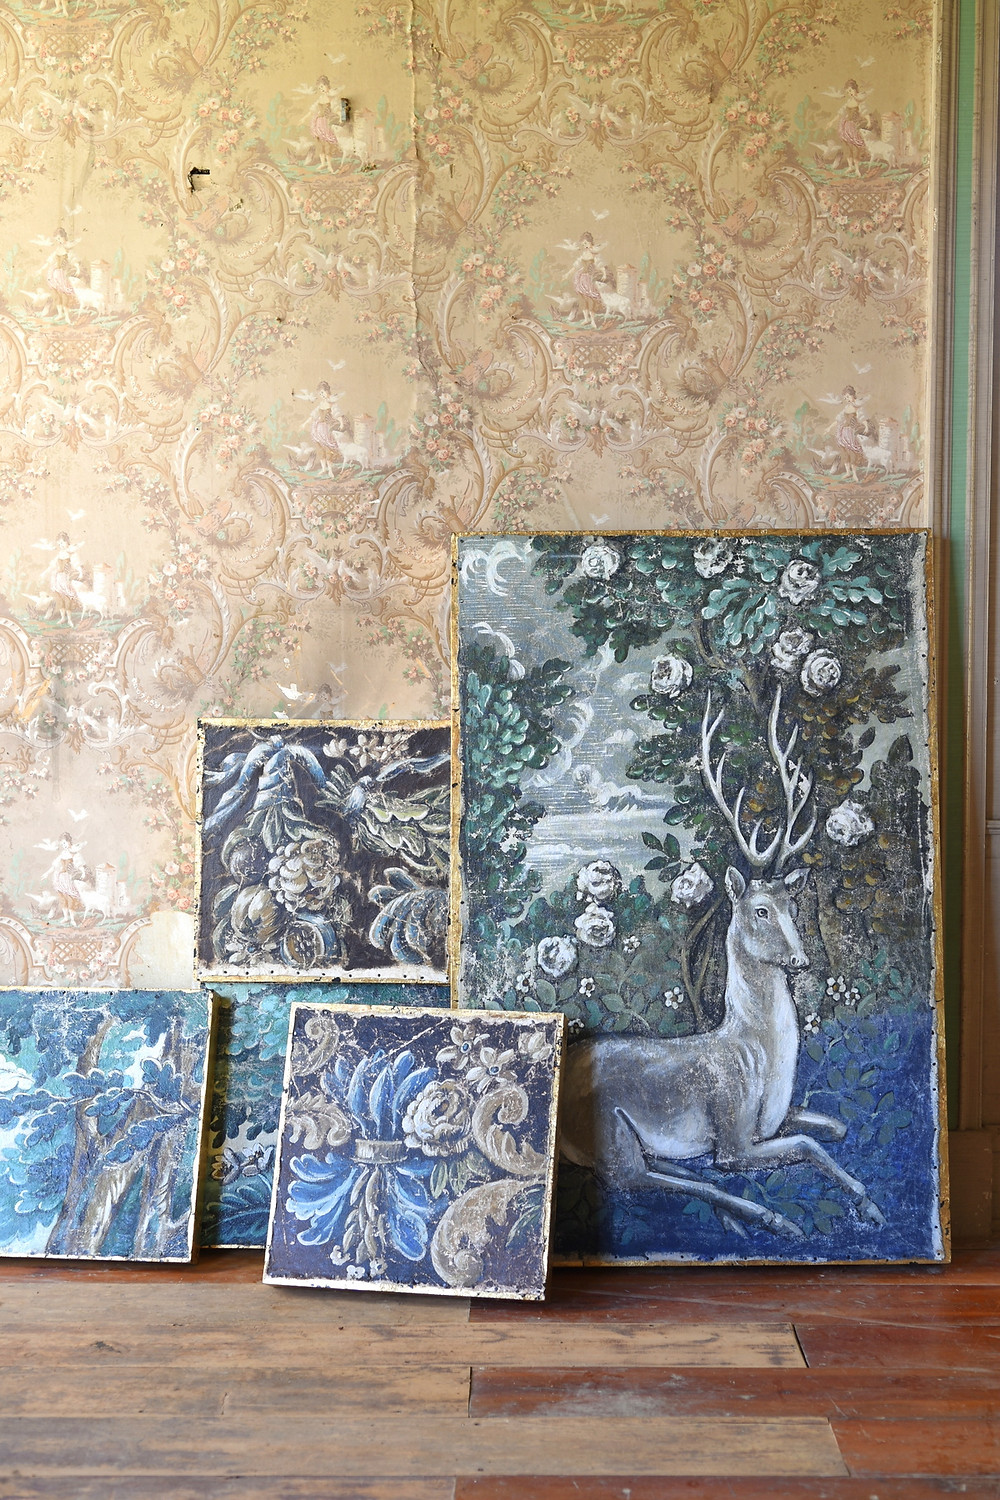 Jennifer Lanne artwork and paintings at the Dr. Oliver Bronson House Hudson, New York